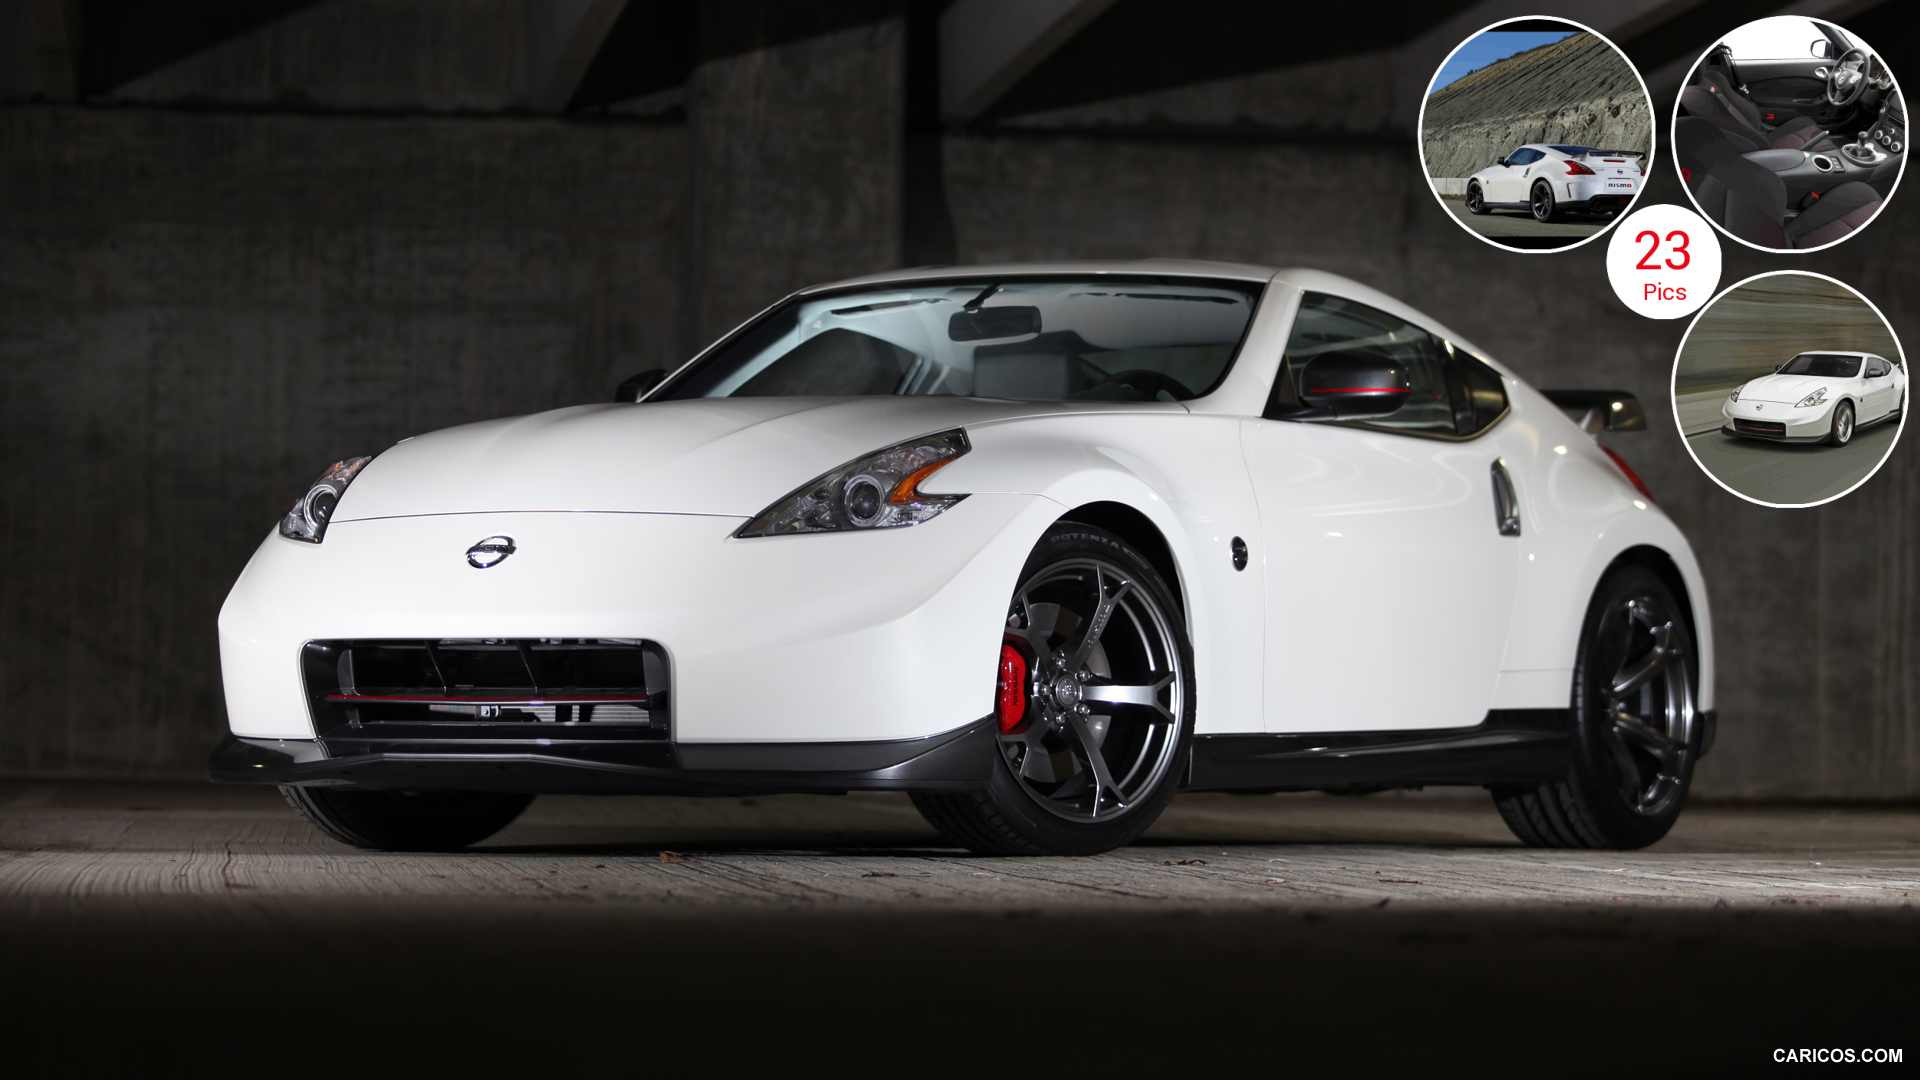 Nissan 370z Wallpaper For Iphone